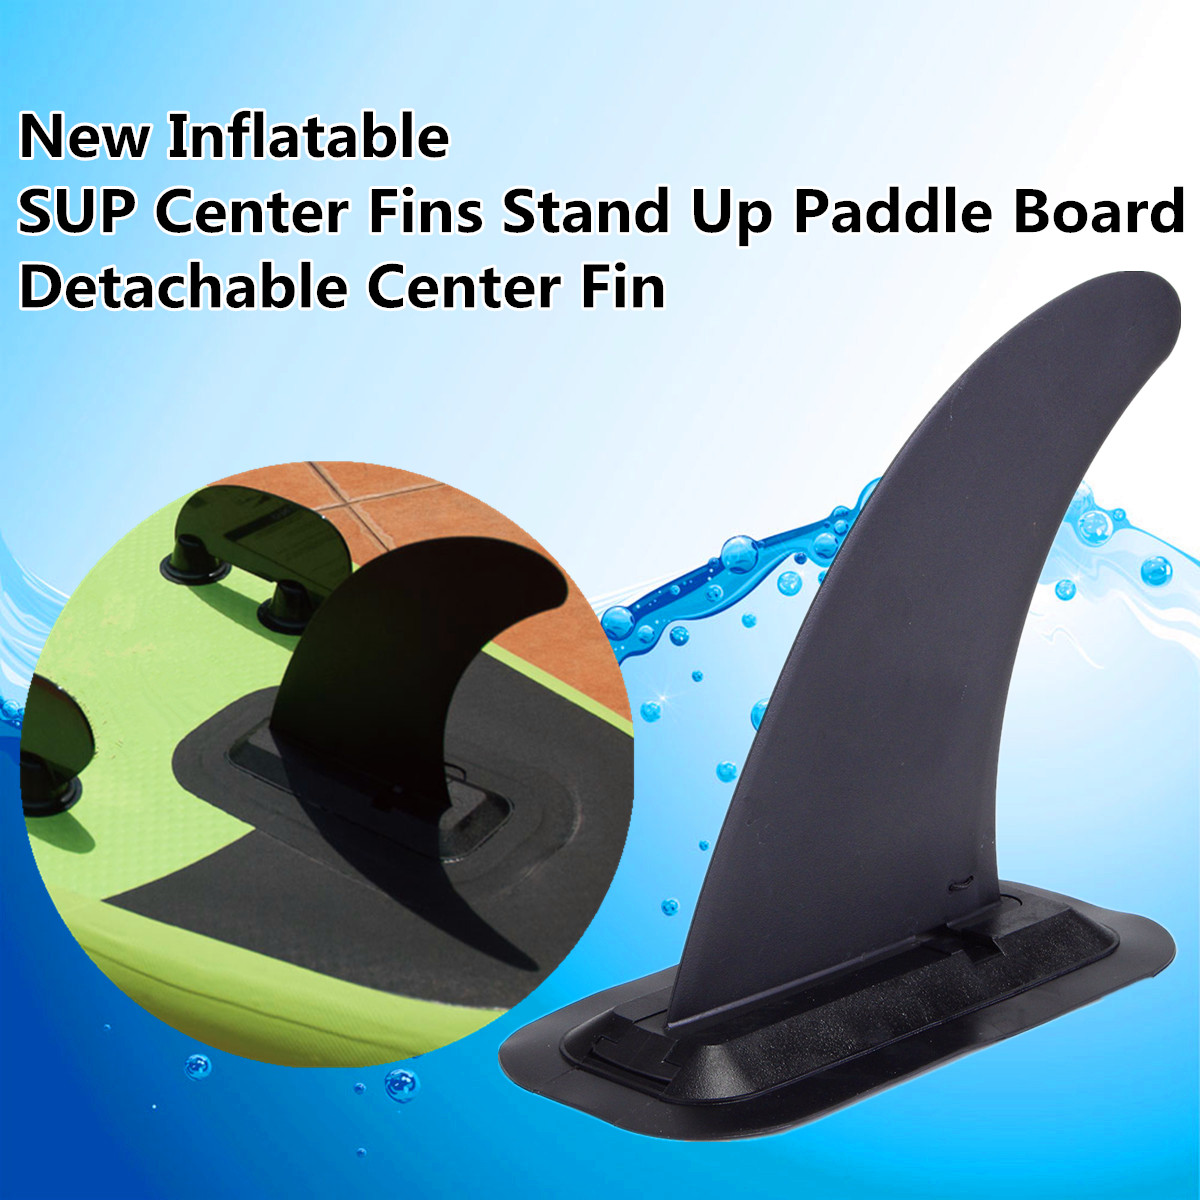 Inflatable SUP Detachable Center Fin